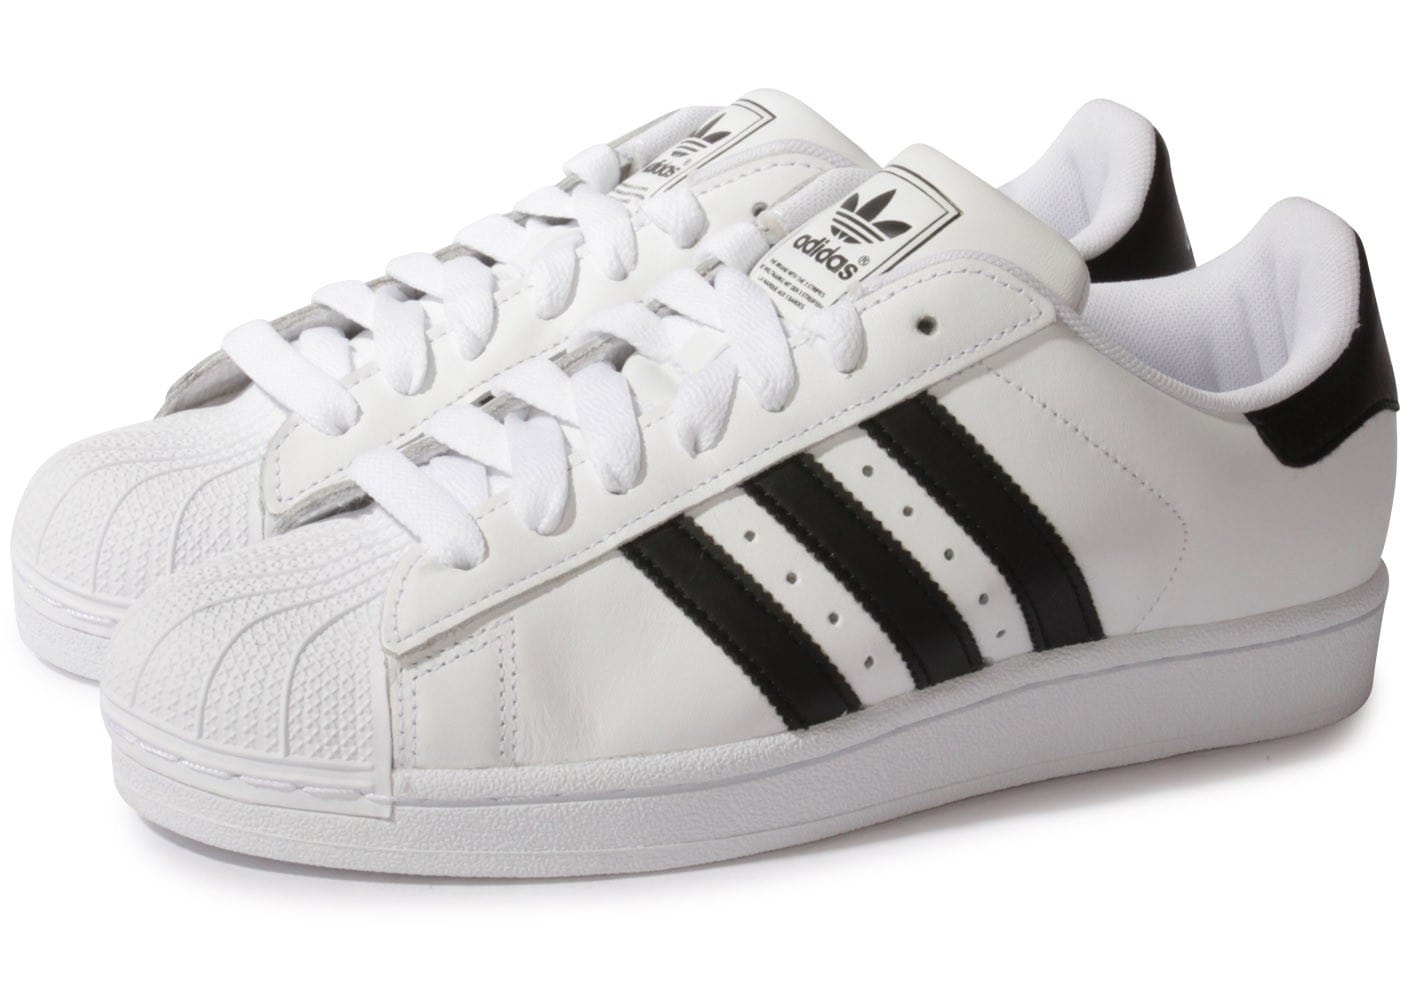 adidas superstar 2 blanche et noire chaussures homme chausport. Black Bedroom Furniture Sets. Home Design Ideas